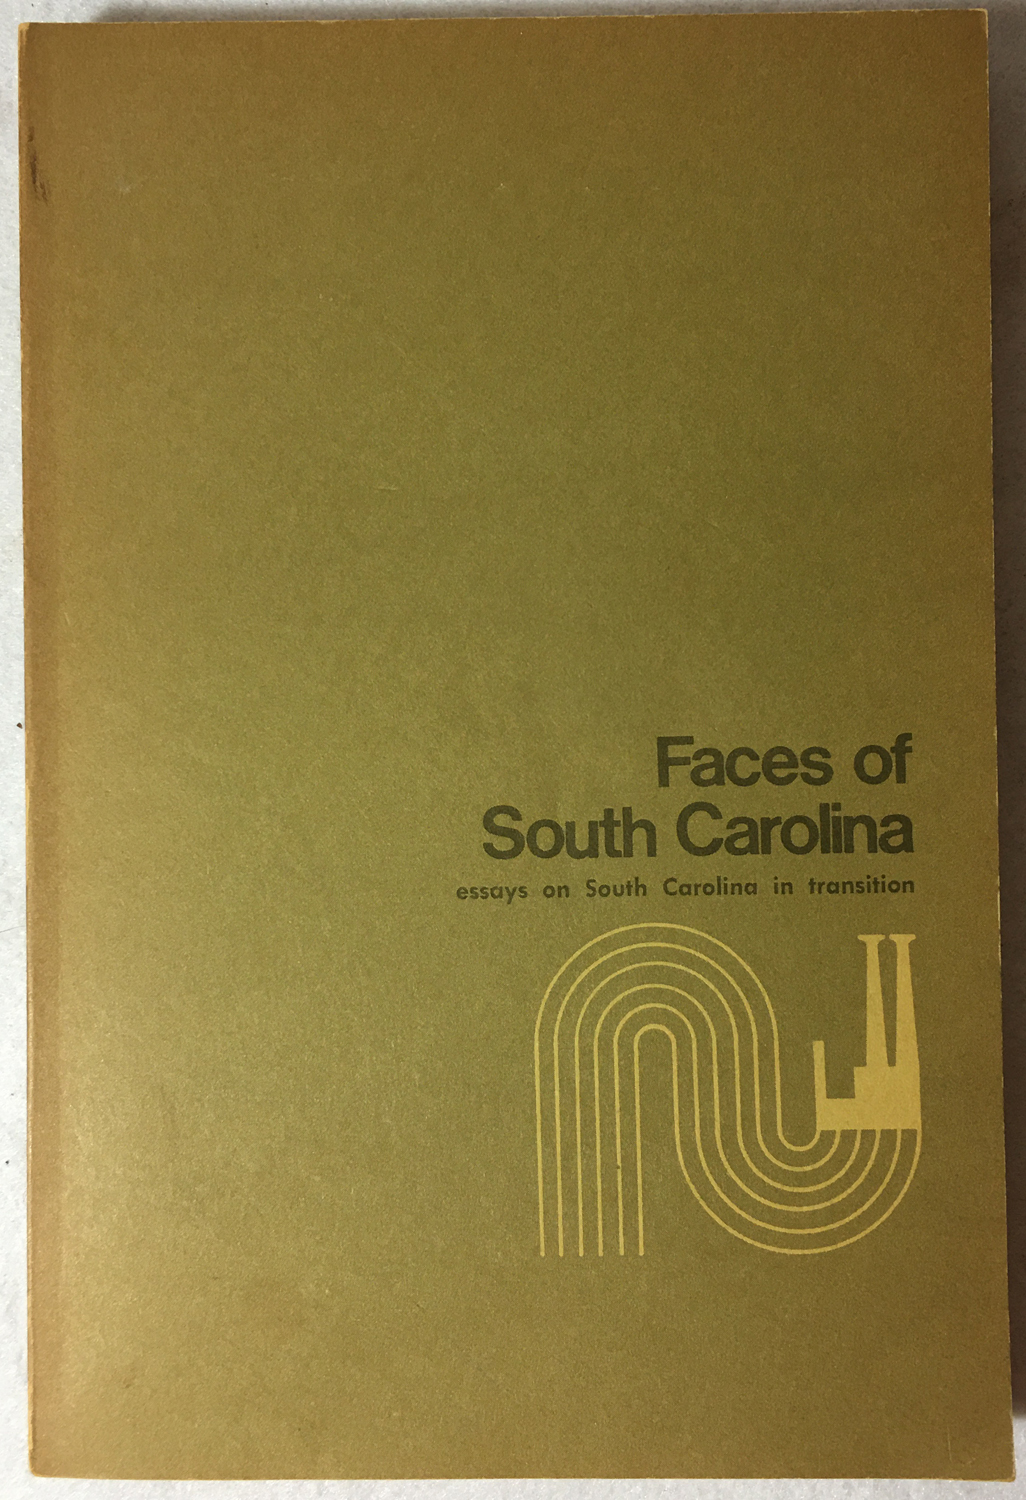 Image for Faces of South Carolina essays of South Carolina in transition